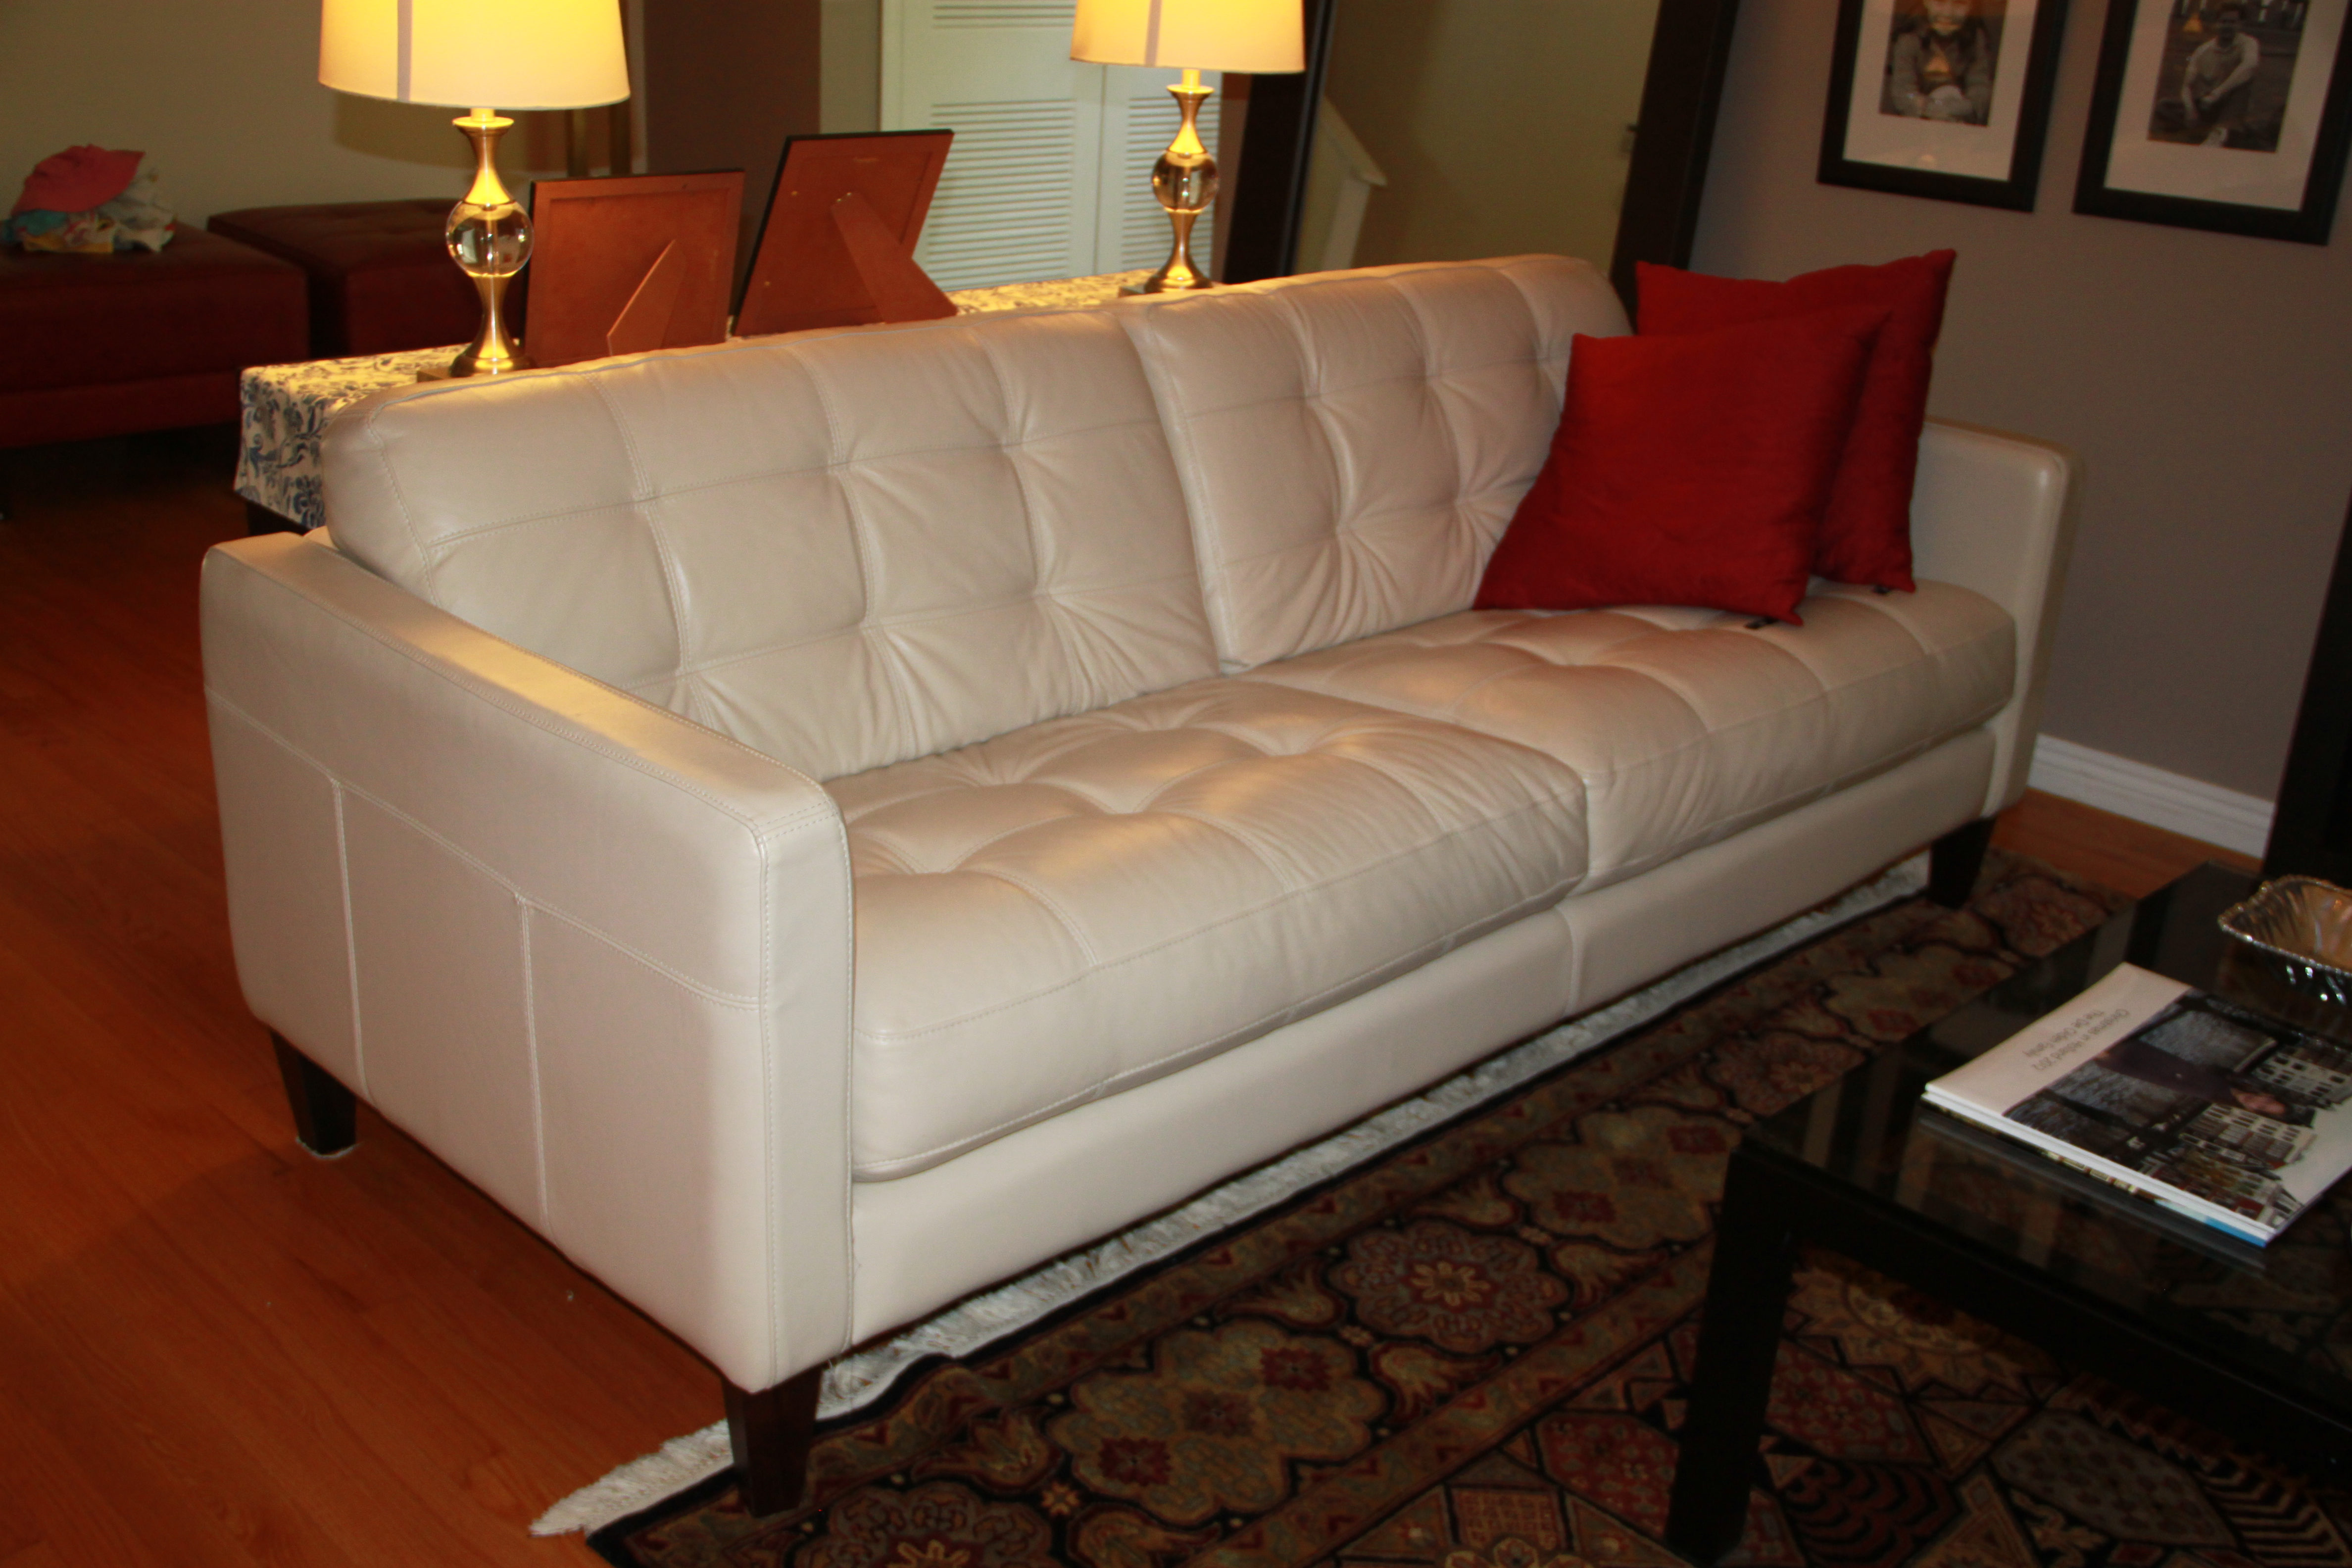 Pleasing Chateau Dax Milan Leather Sofa Caraccident5 Cool Chair Designs And Ideas Caraccident5Info